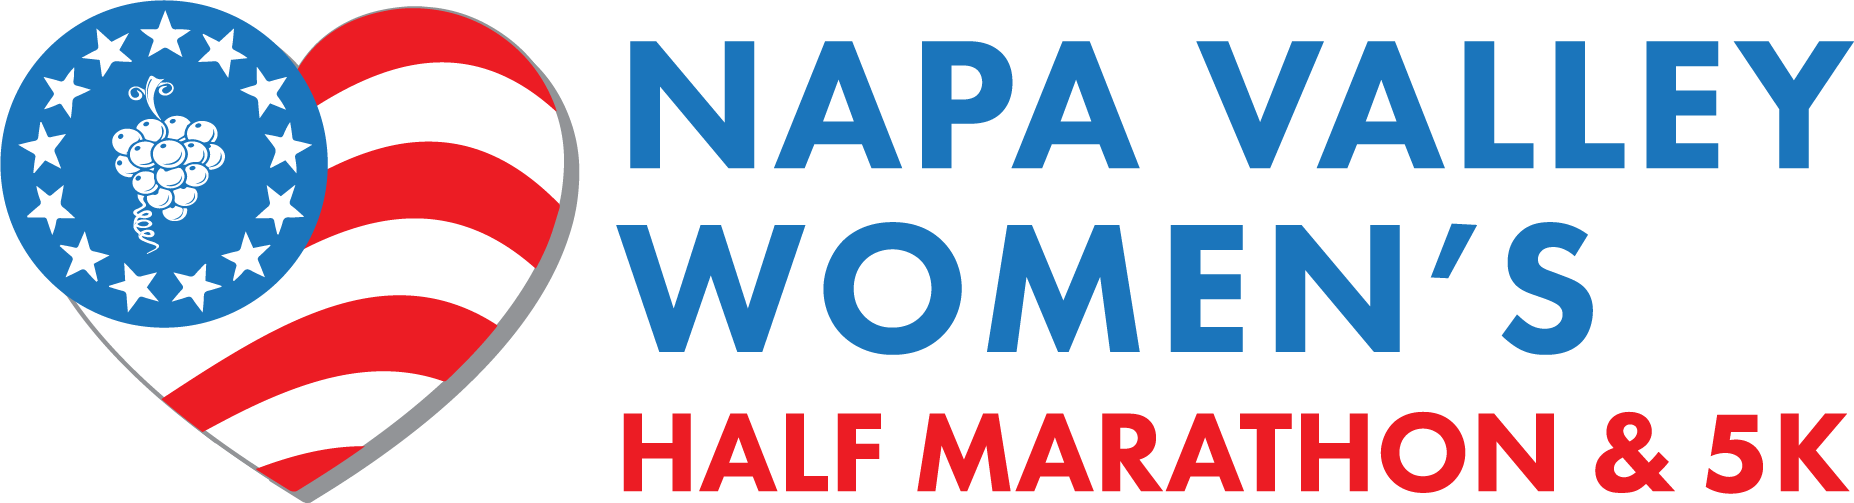 Napa Valley Women's Half Marathon & 5K